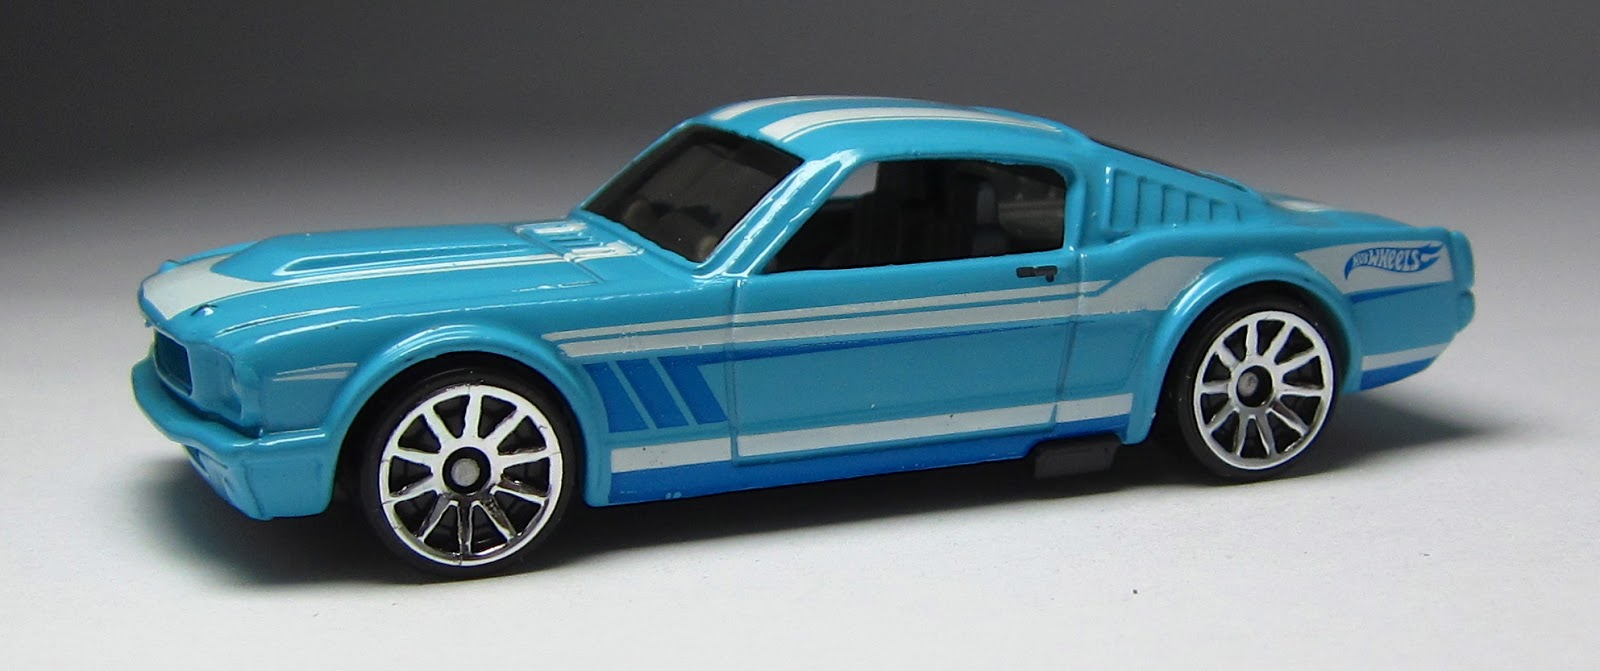 hot wheels 65 mustang 22 fastback 2013 basic recolor - Rare Hot Wheels Cars 2013